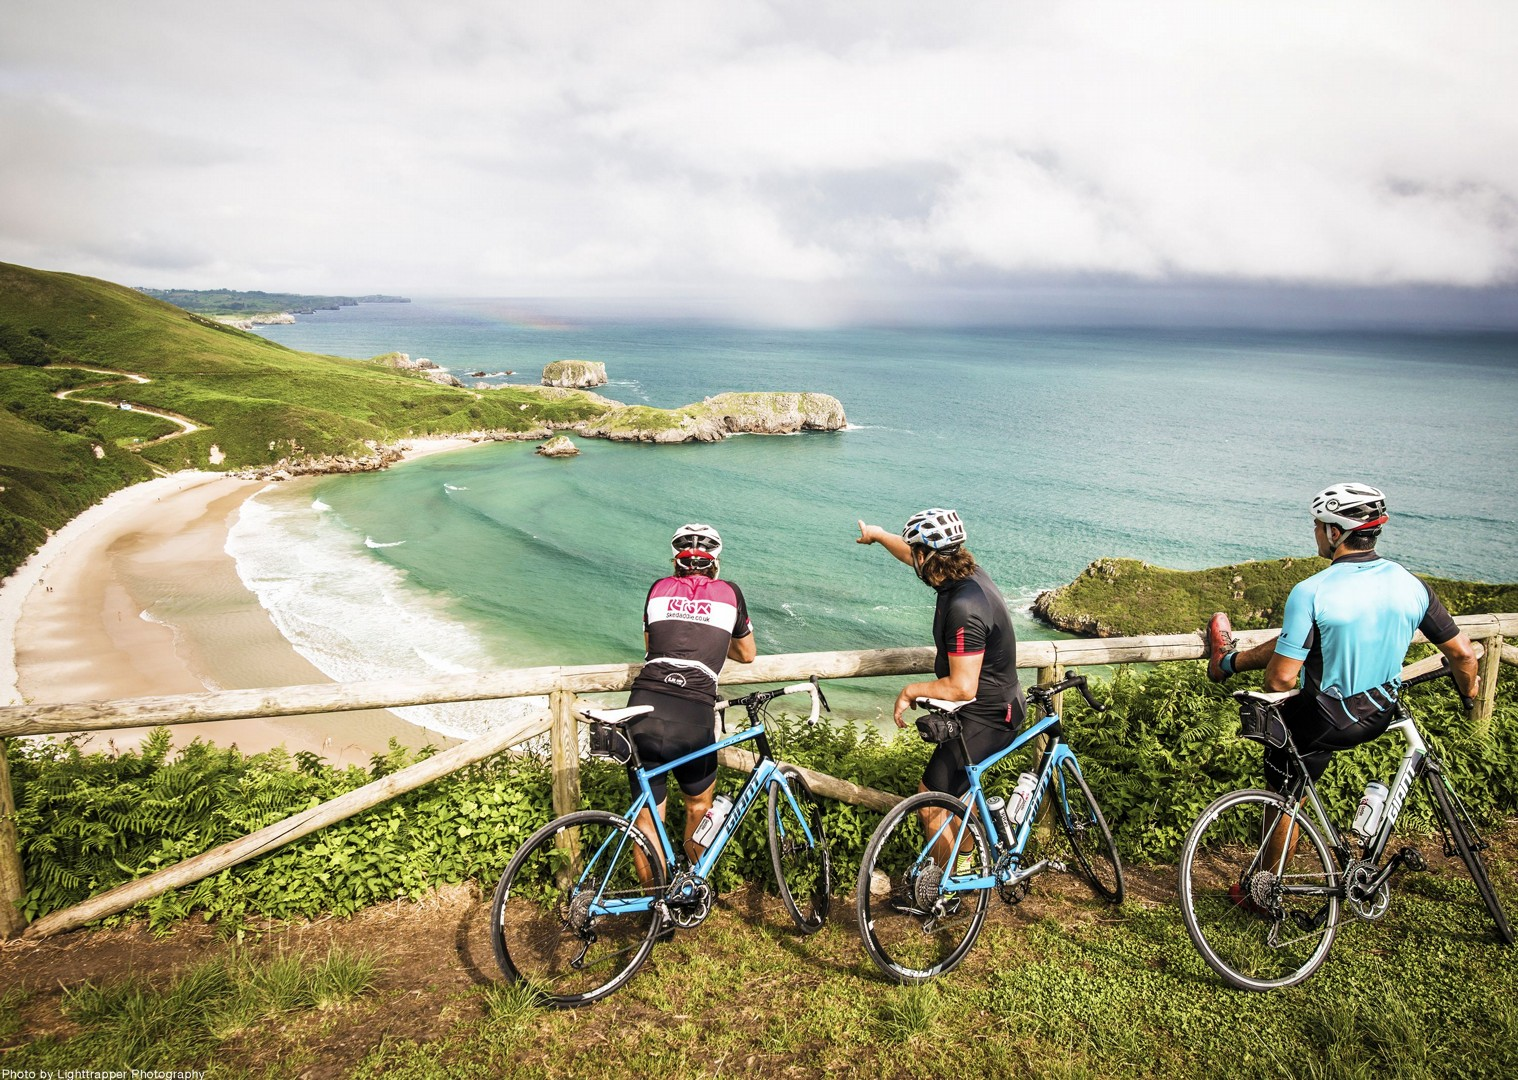 bay-spain-voast-views-spectacular-road-cycling.jpg - Northern Spain - Road to Santiago - Guided Road Cycling Holiday - Road Cycling